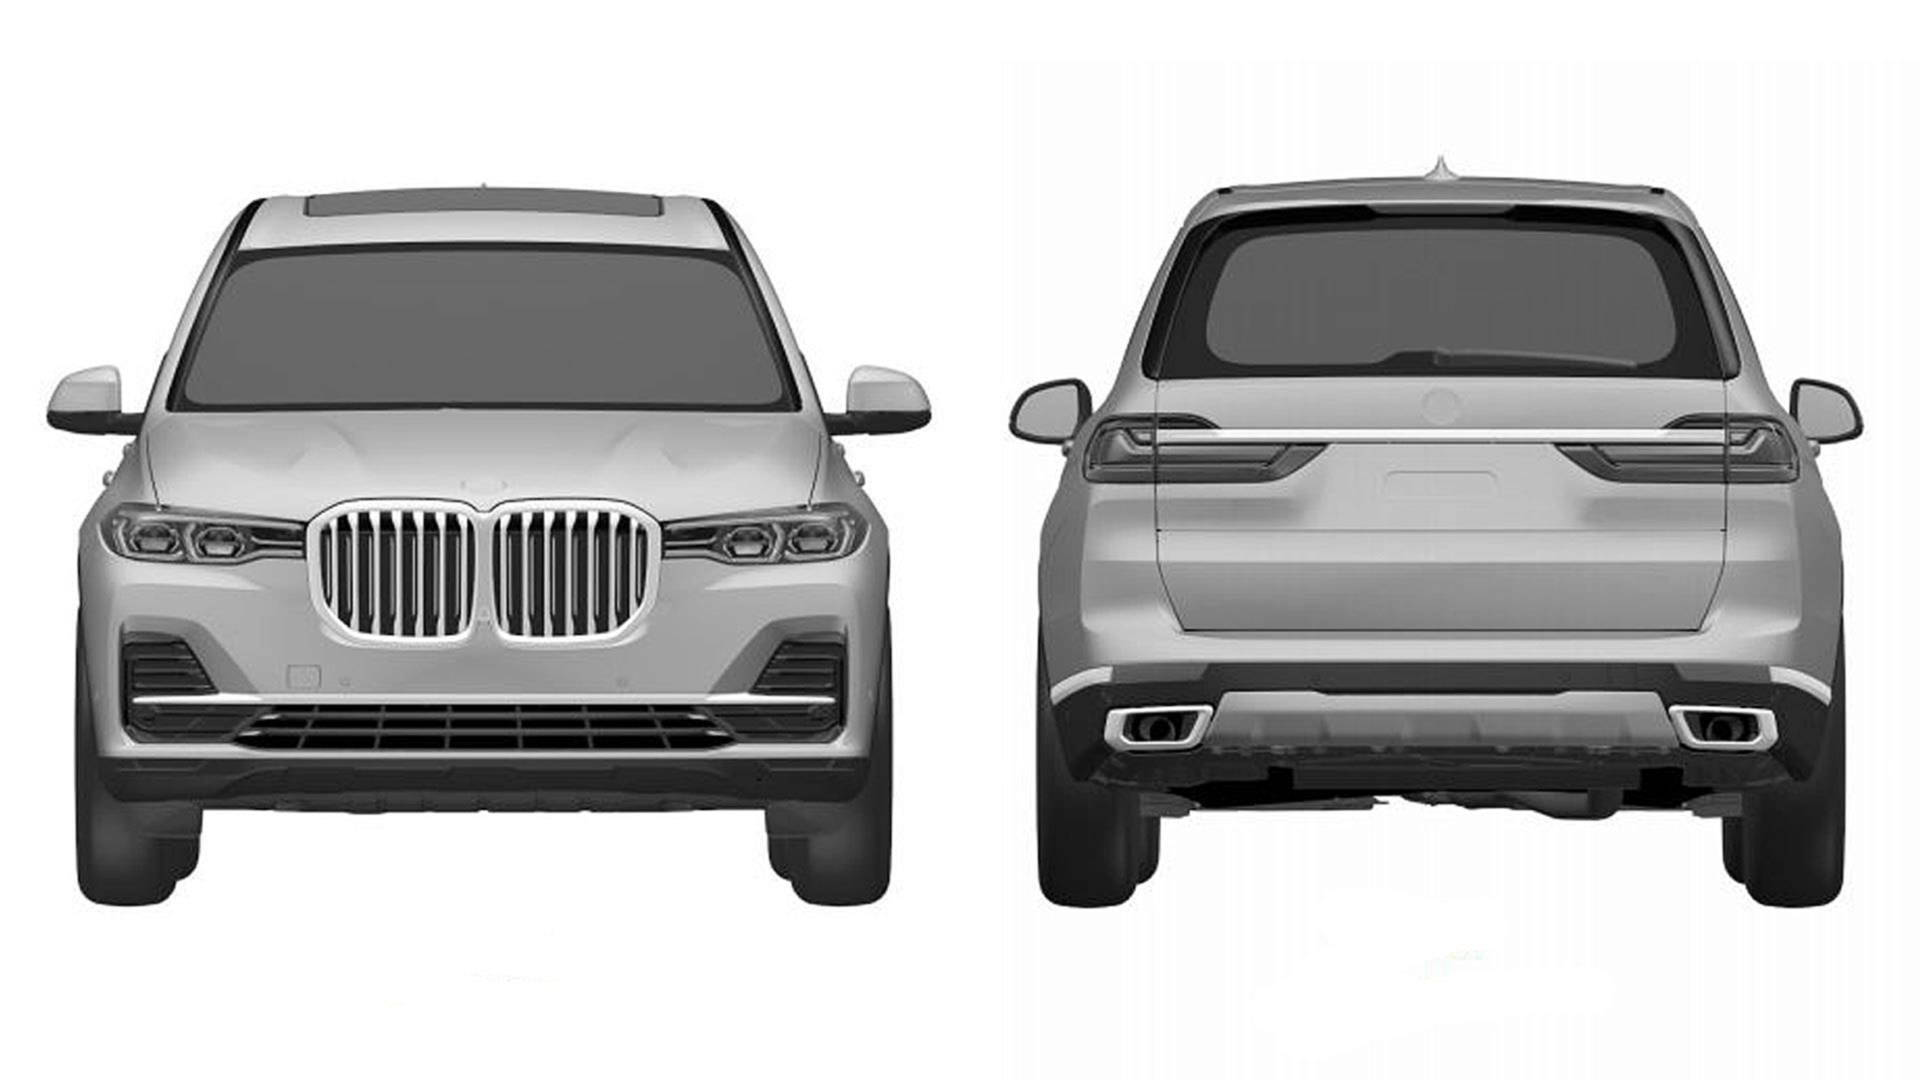 BMW X7 patent drawing